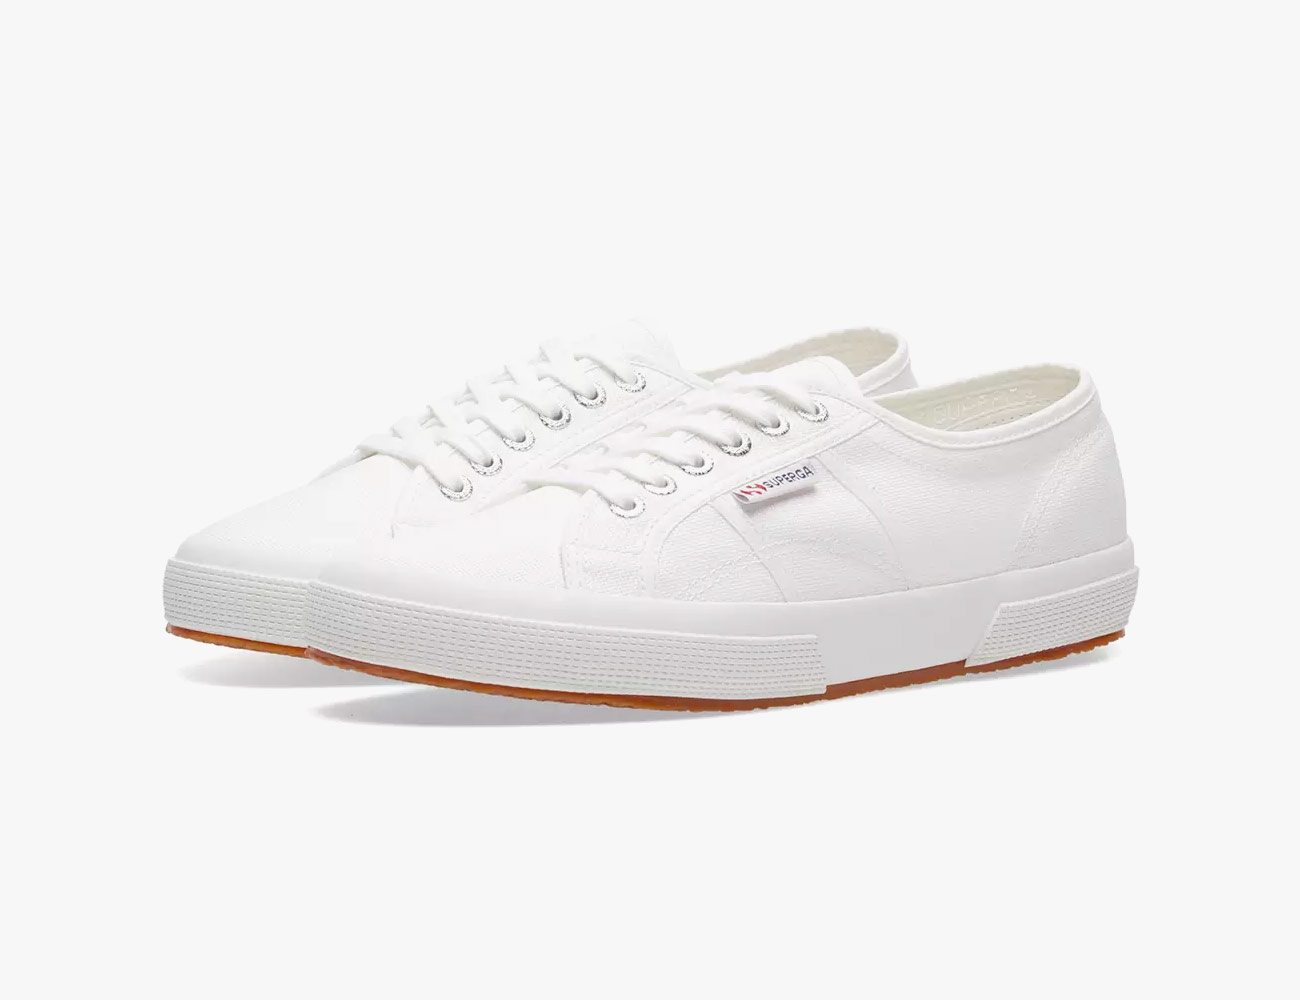 d8c2d6581f3 8 White Sneakers to Wear All Summer Long